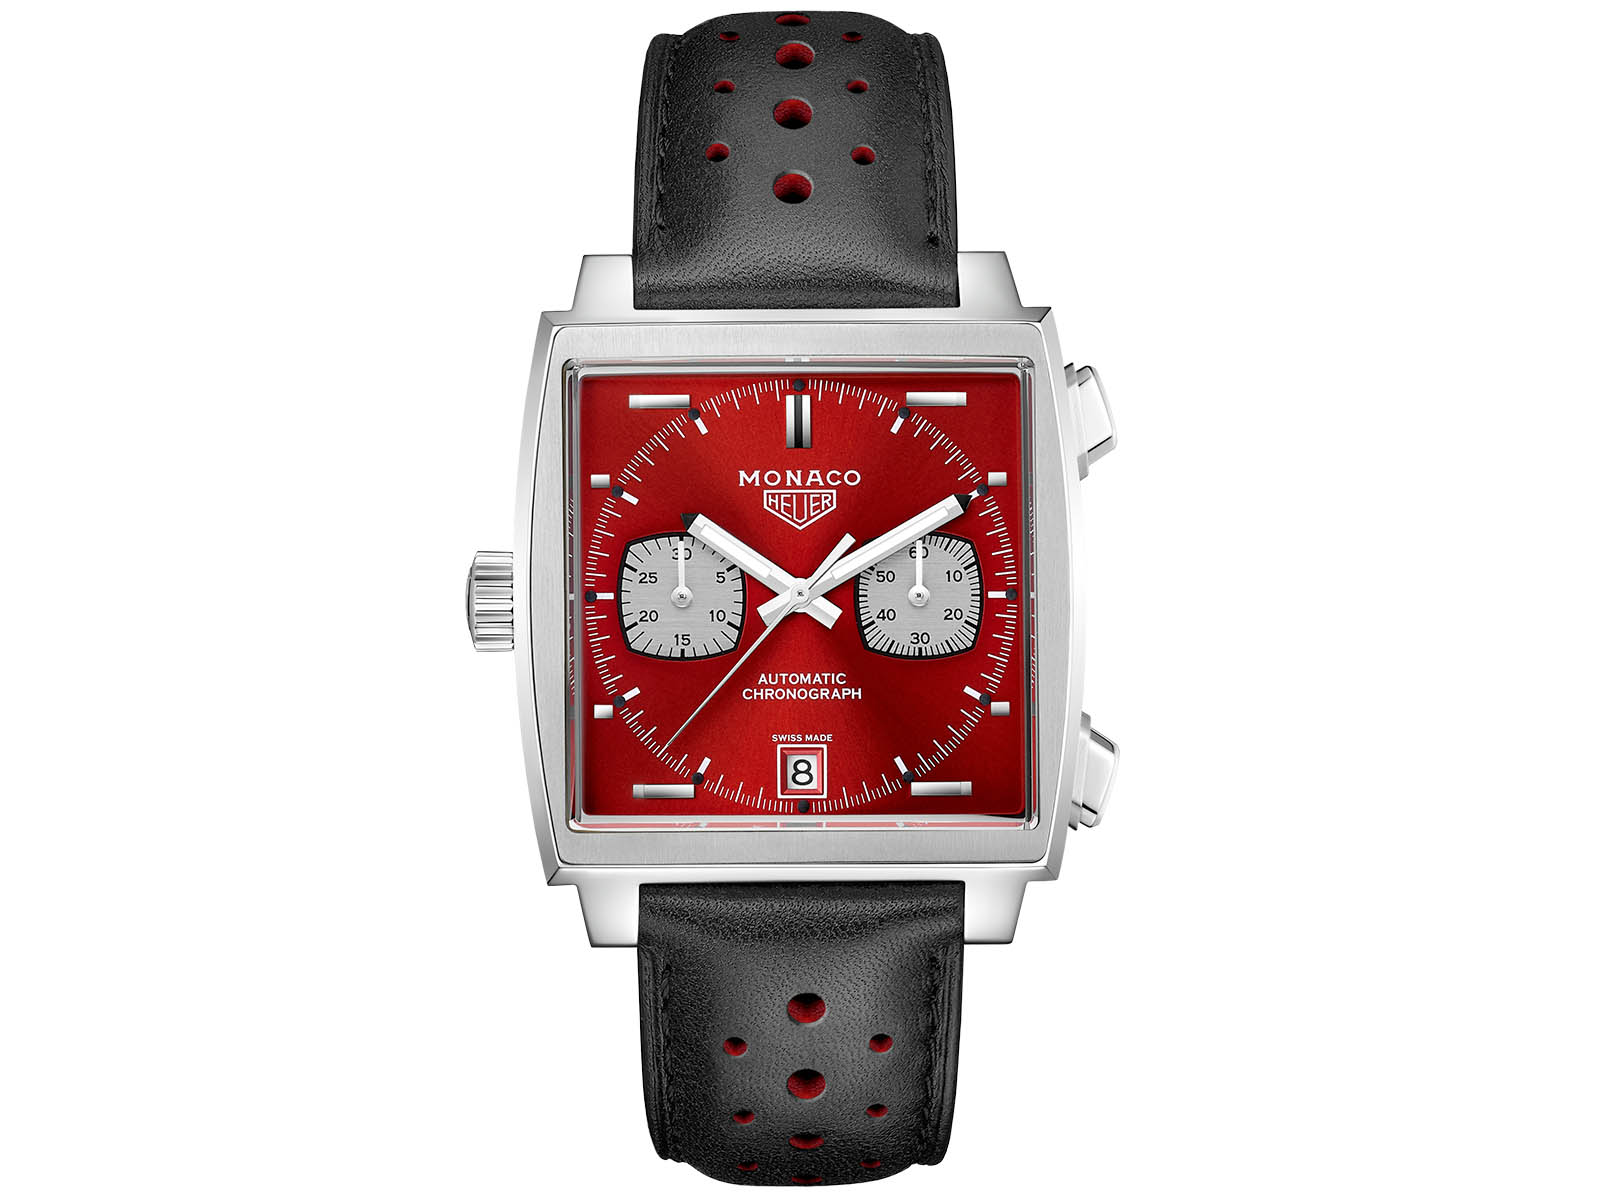 caw211w-fc6467-tag-heuer-1979-1989-limited-edition-8.jpg